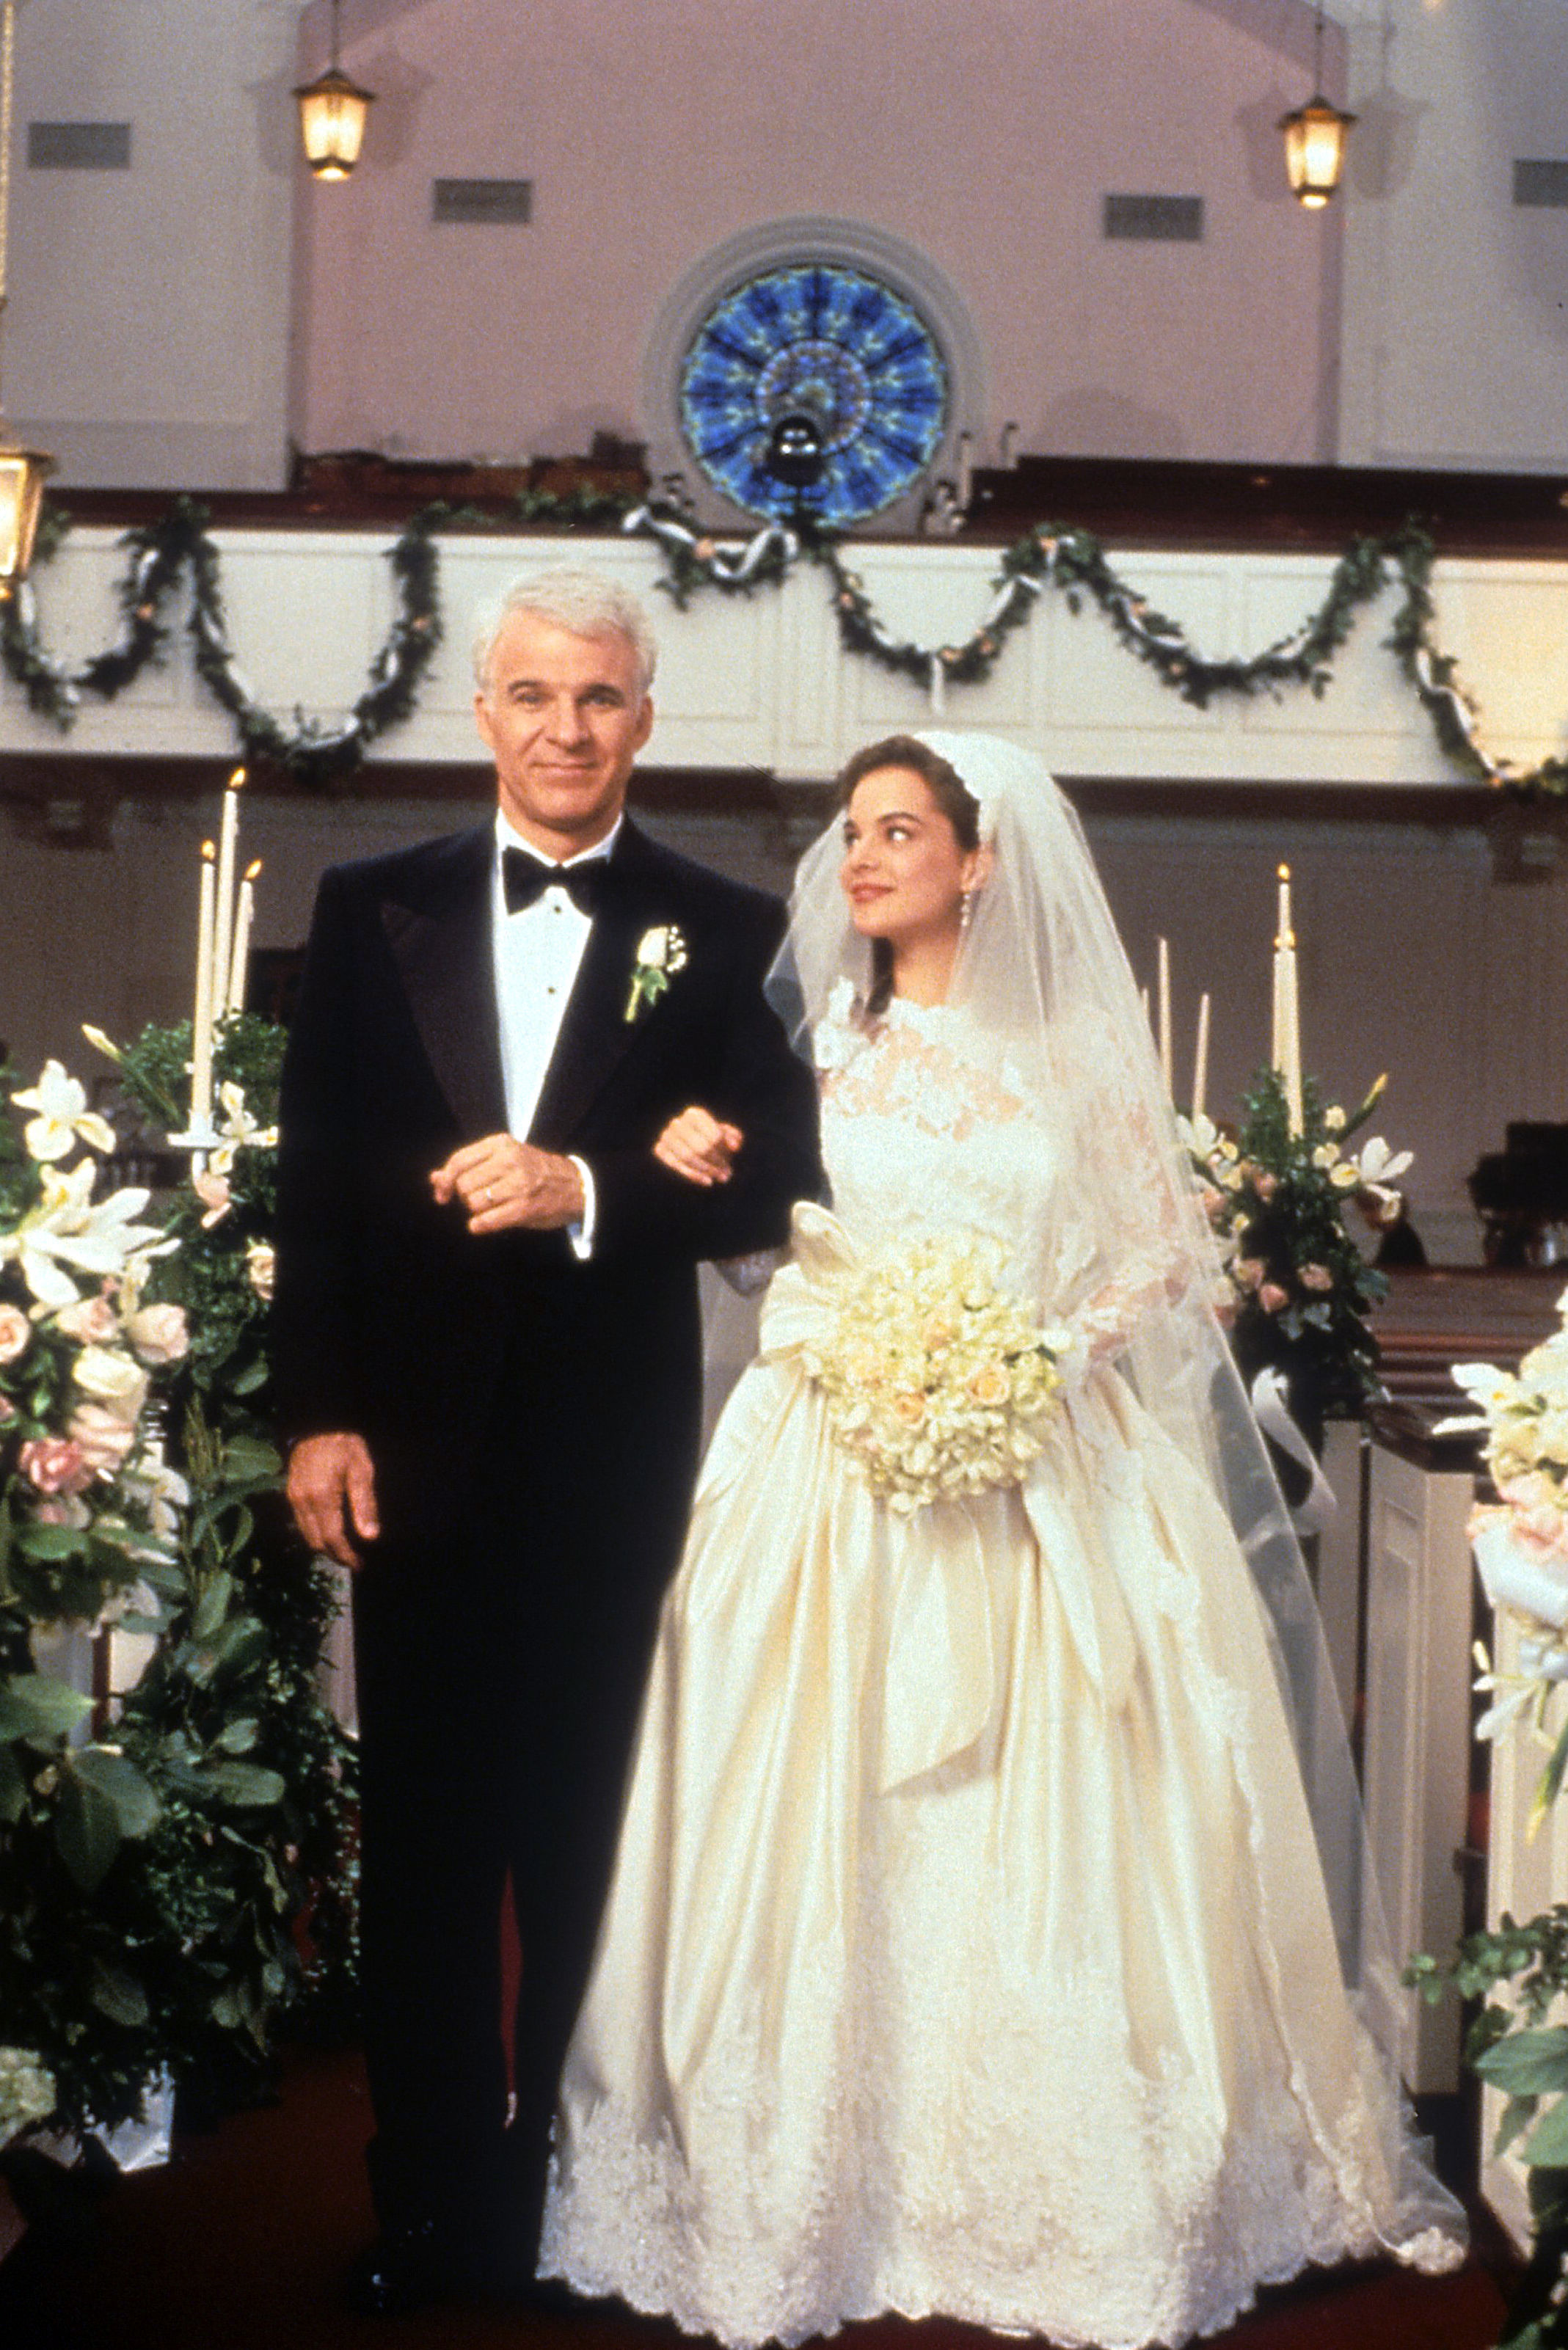 These Are the South's Favorite Wedding Movies